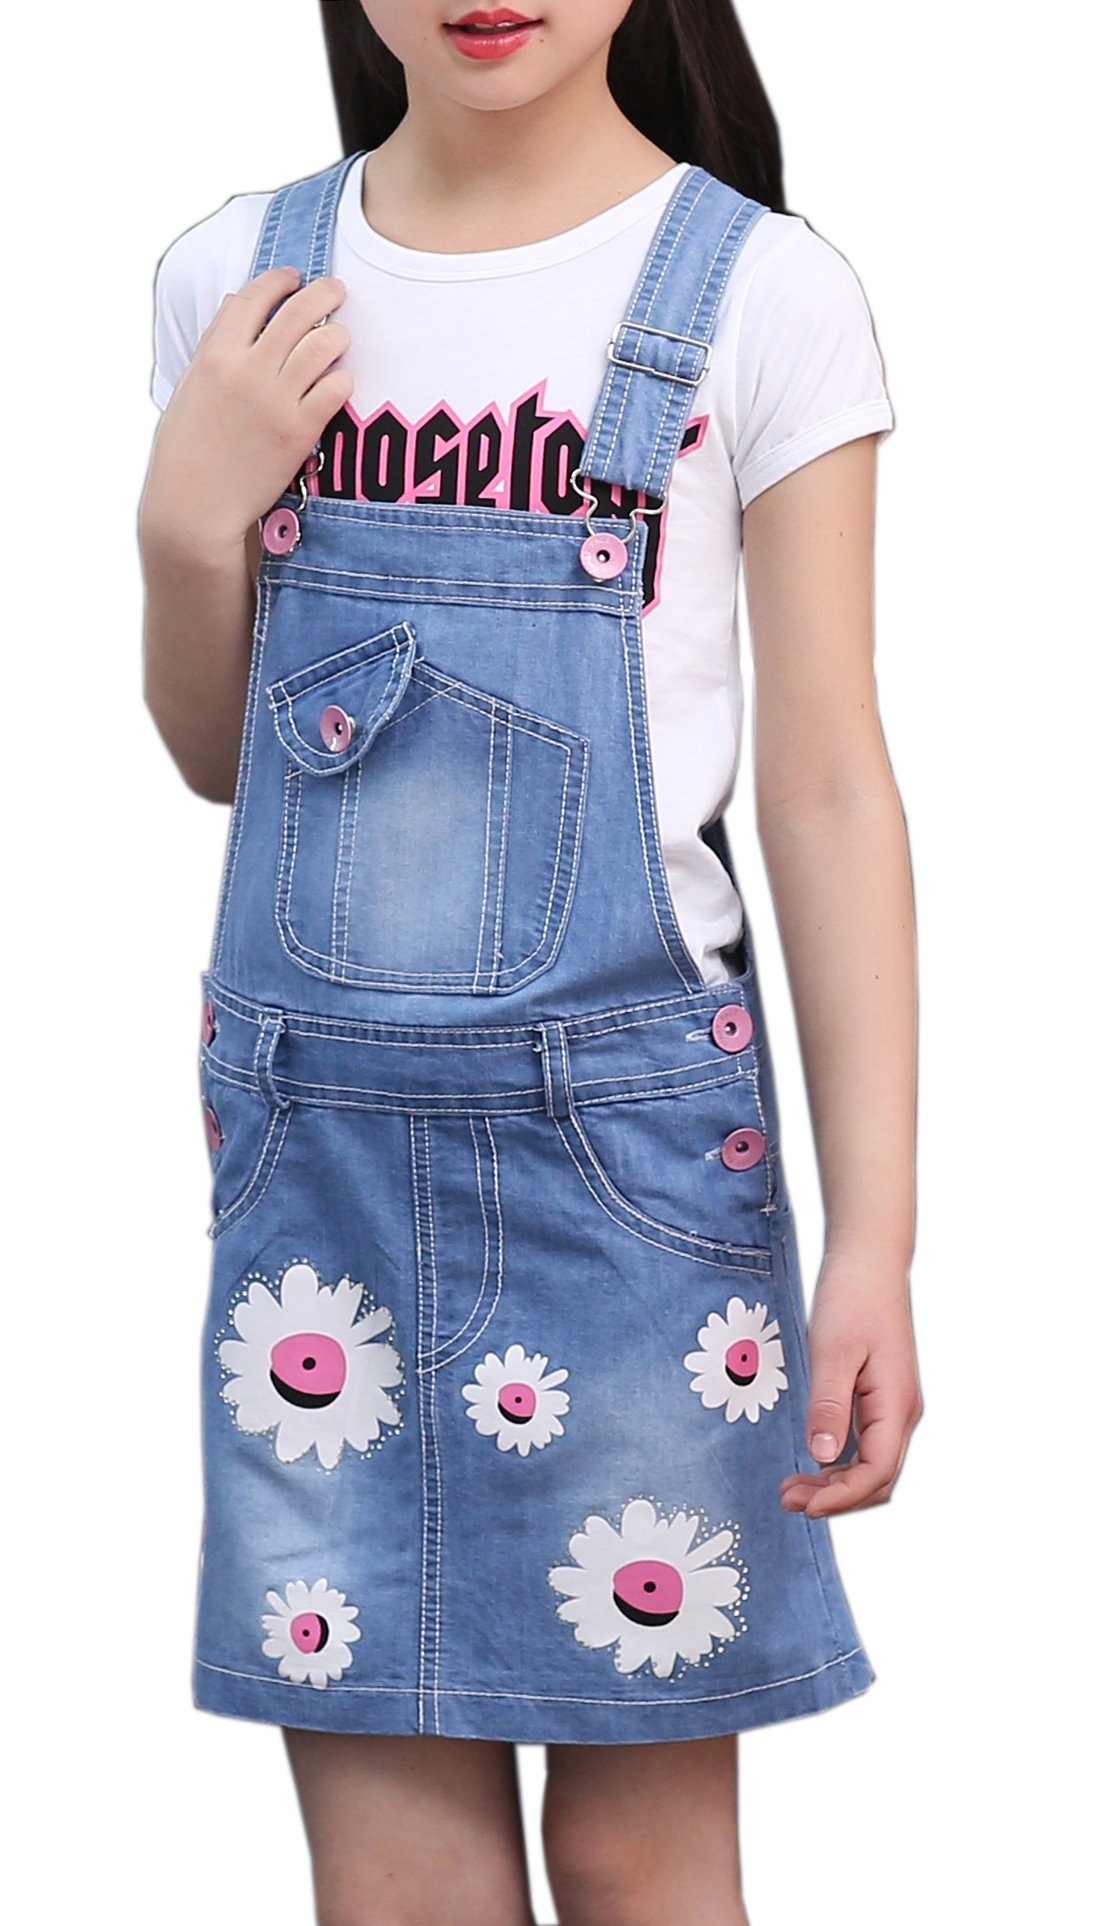 Sitmptol Big Girls Pink White Floral Printed Bibs Overall Skirts Sweet T-Shirt 160 Blue